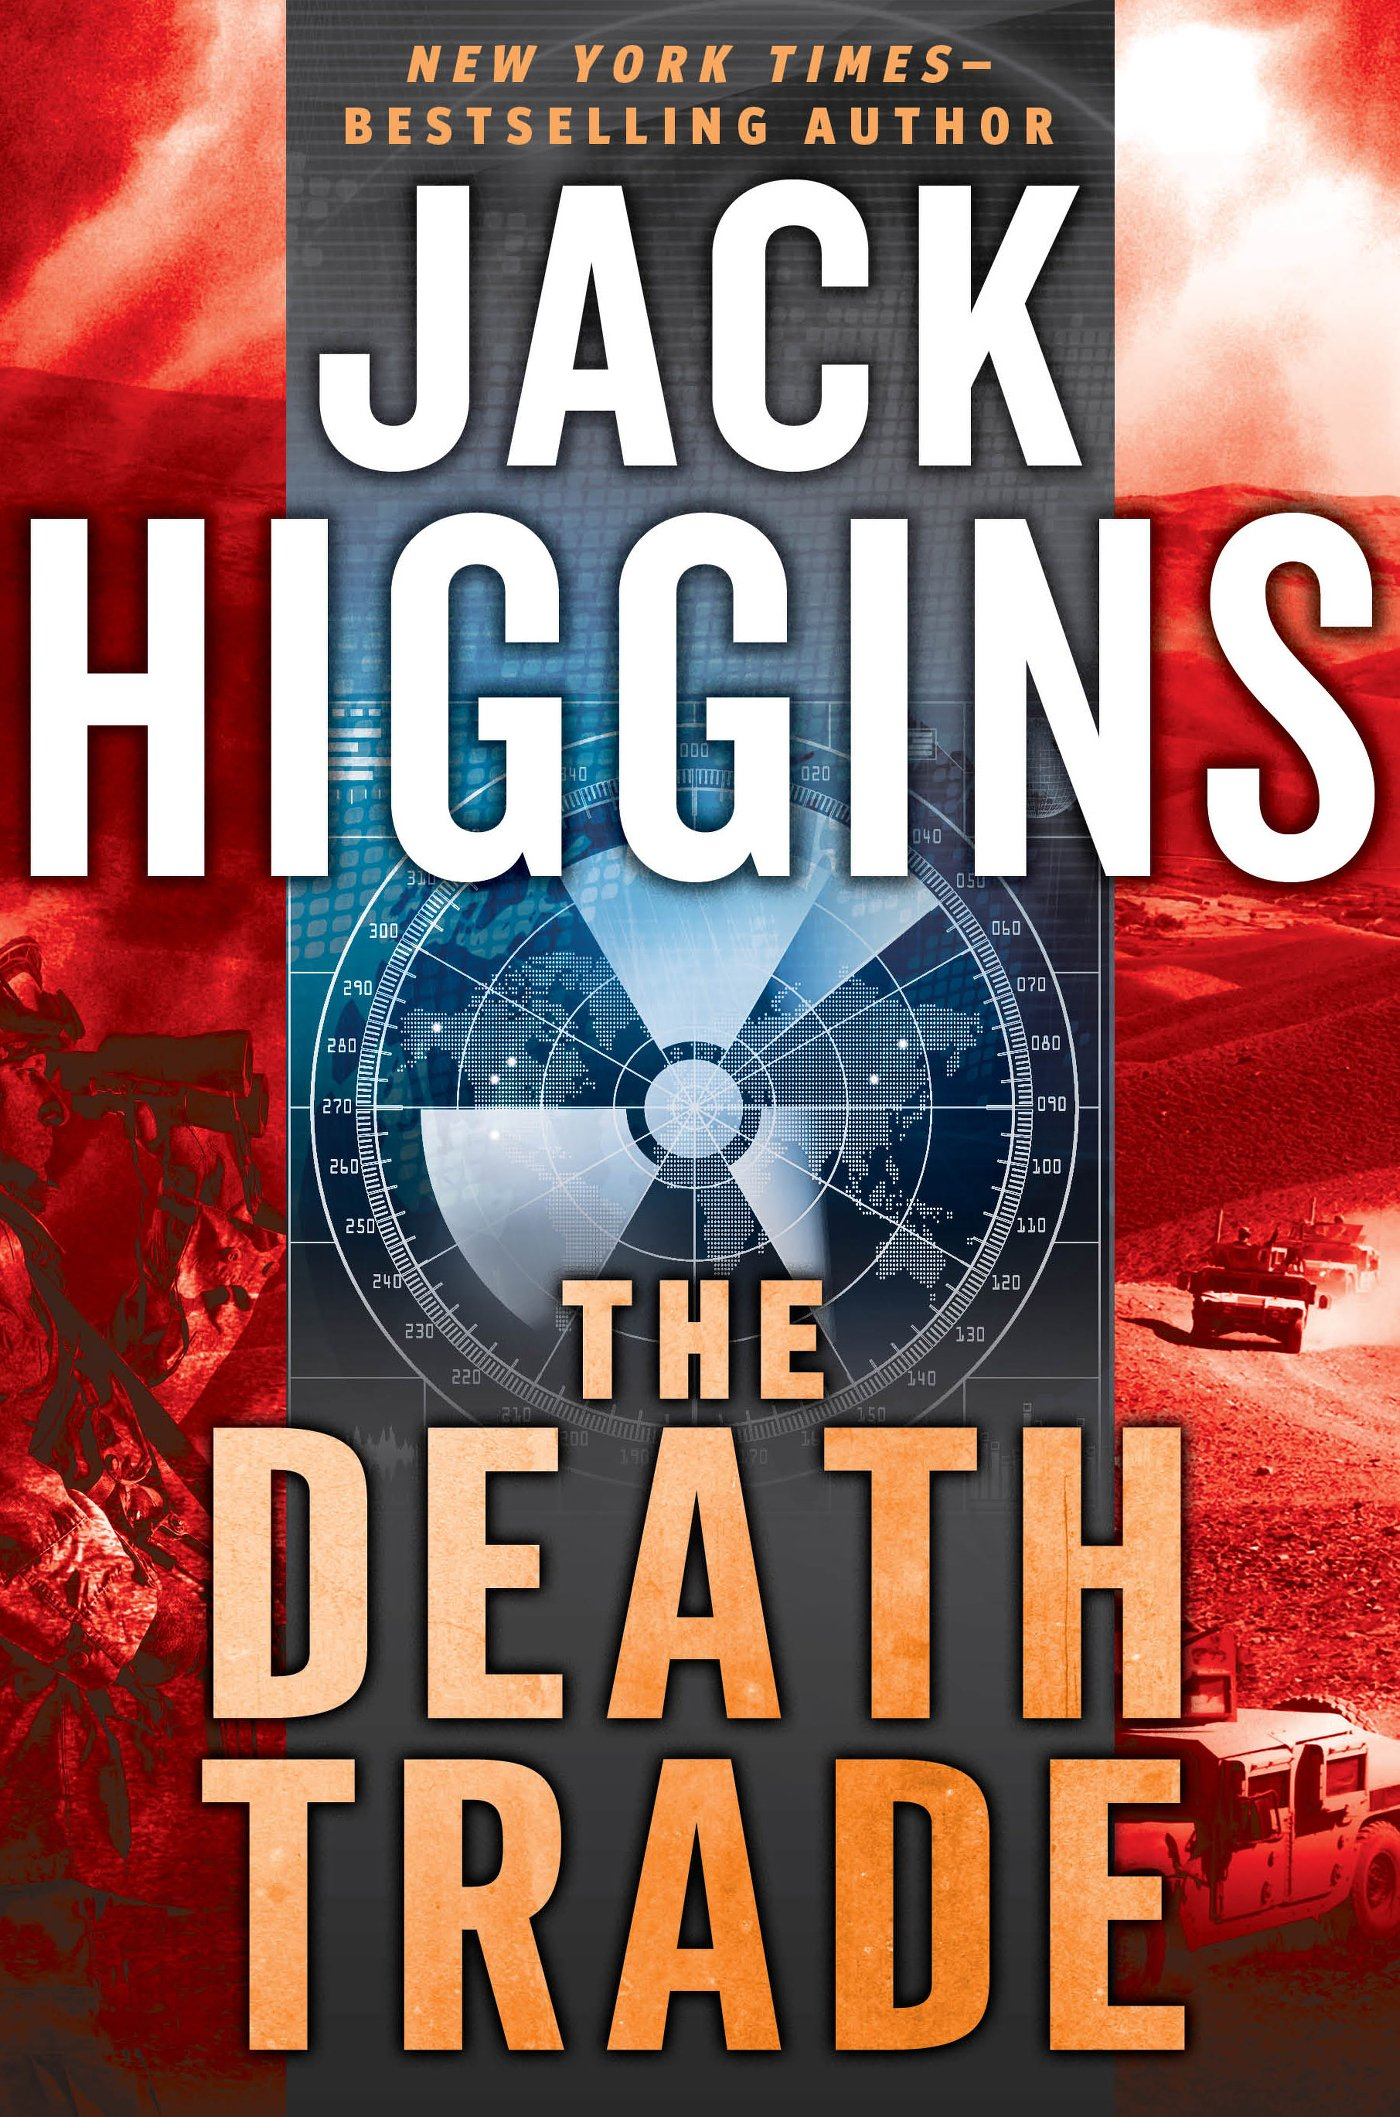 Book Cover of The Death Trade